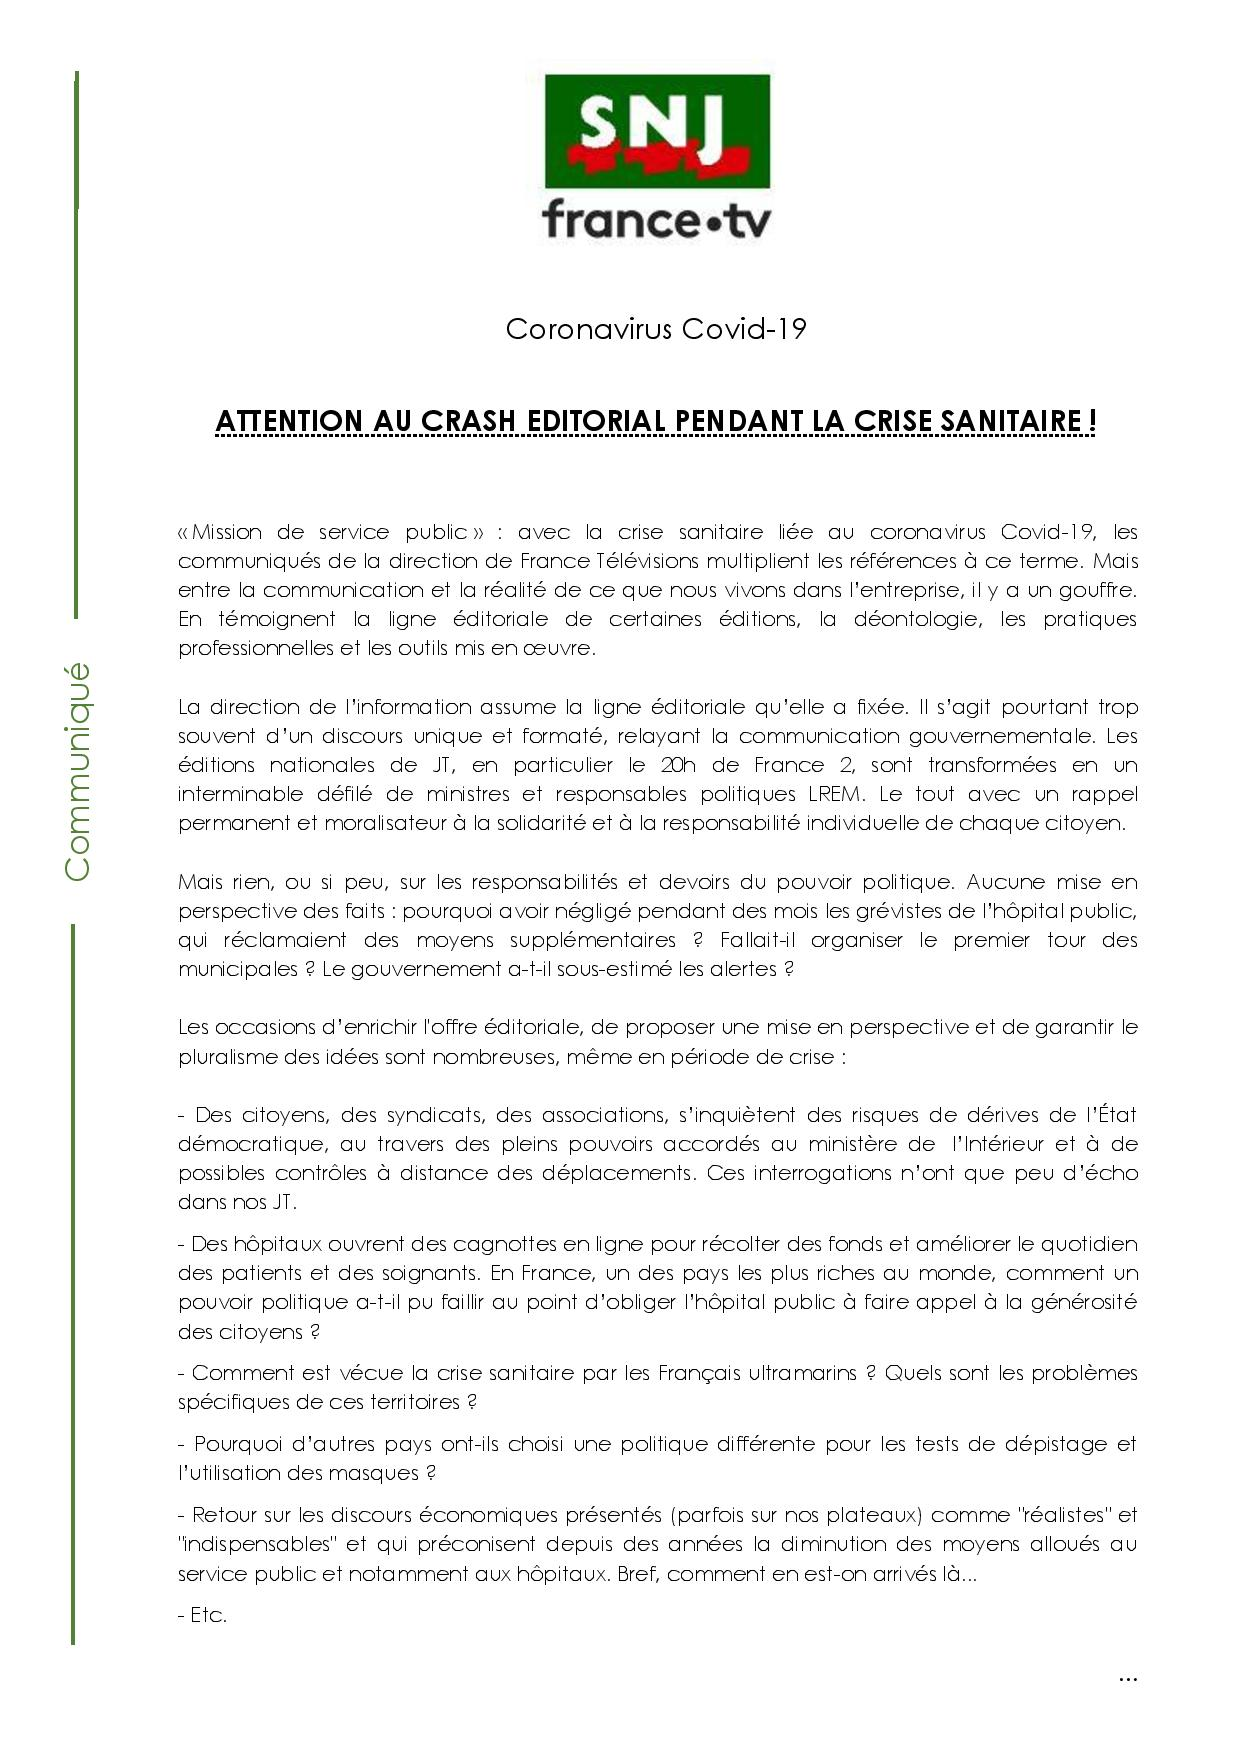 2020-04-09-Coronavirus-Attention-au-crash-éditorial-pendant-la-crise-sanitaire-page-001.jpg